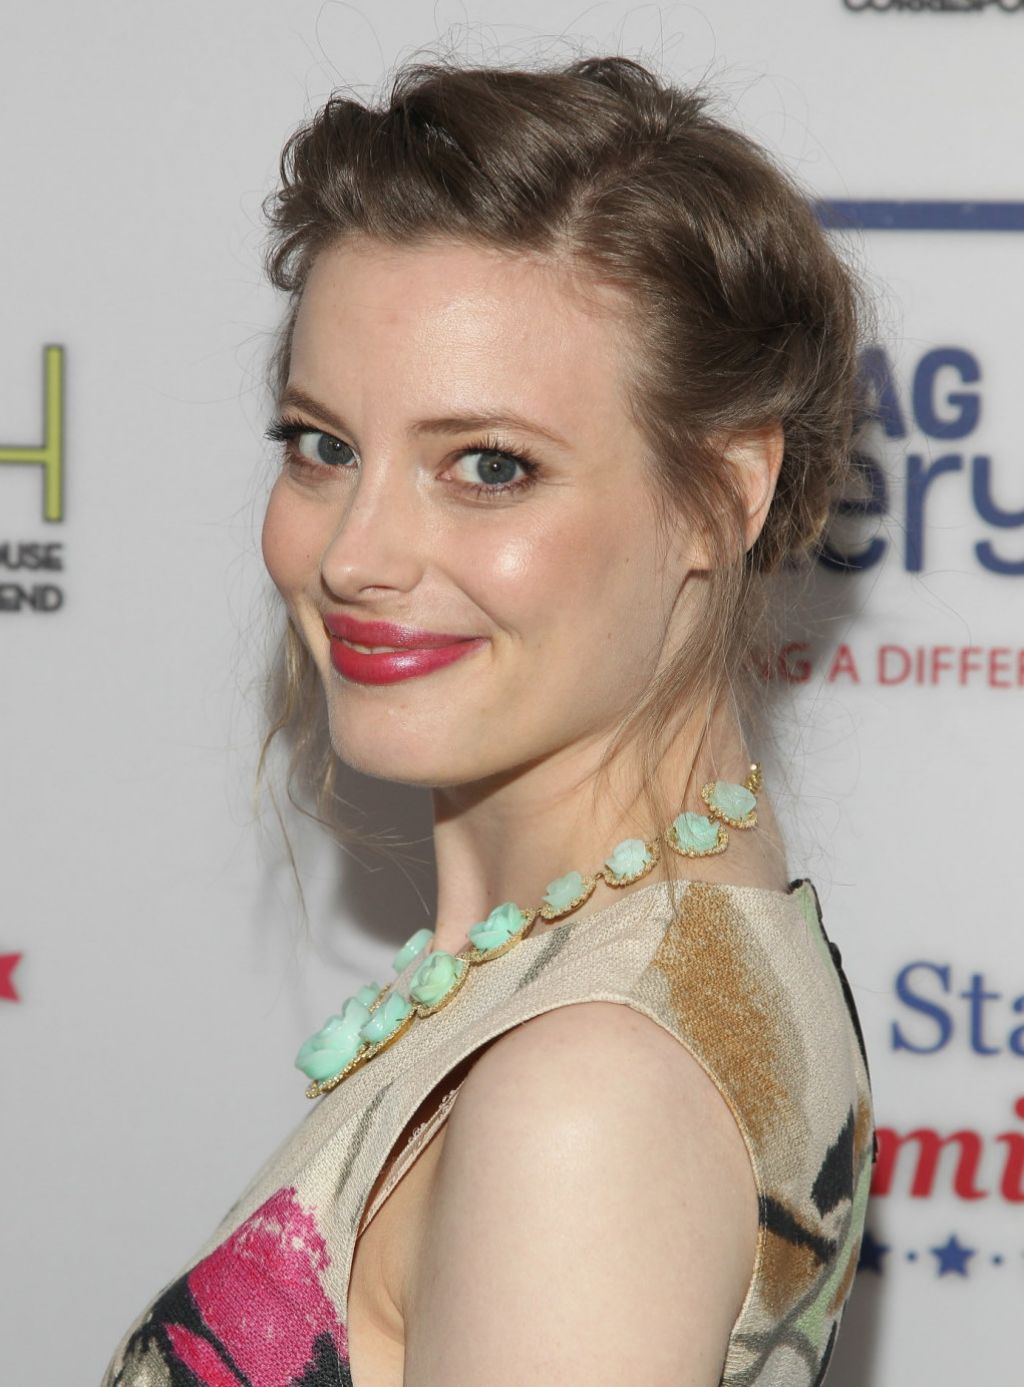 Gillian Jacobs 2015 Annual Garden Brunch In Washington Dc